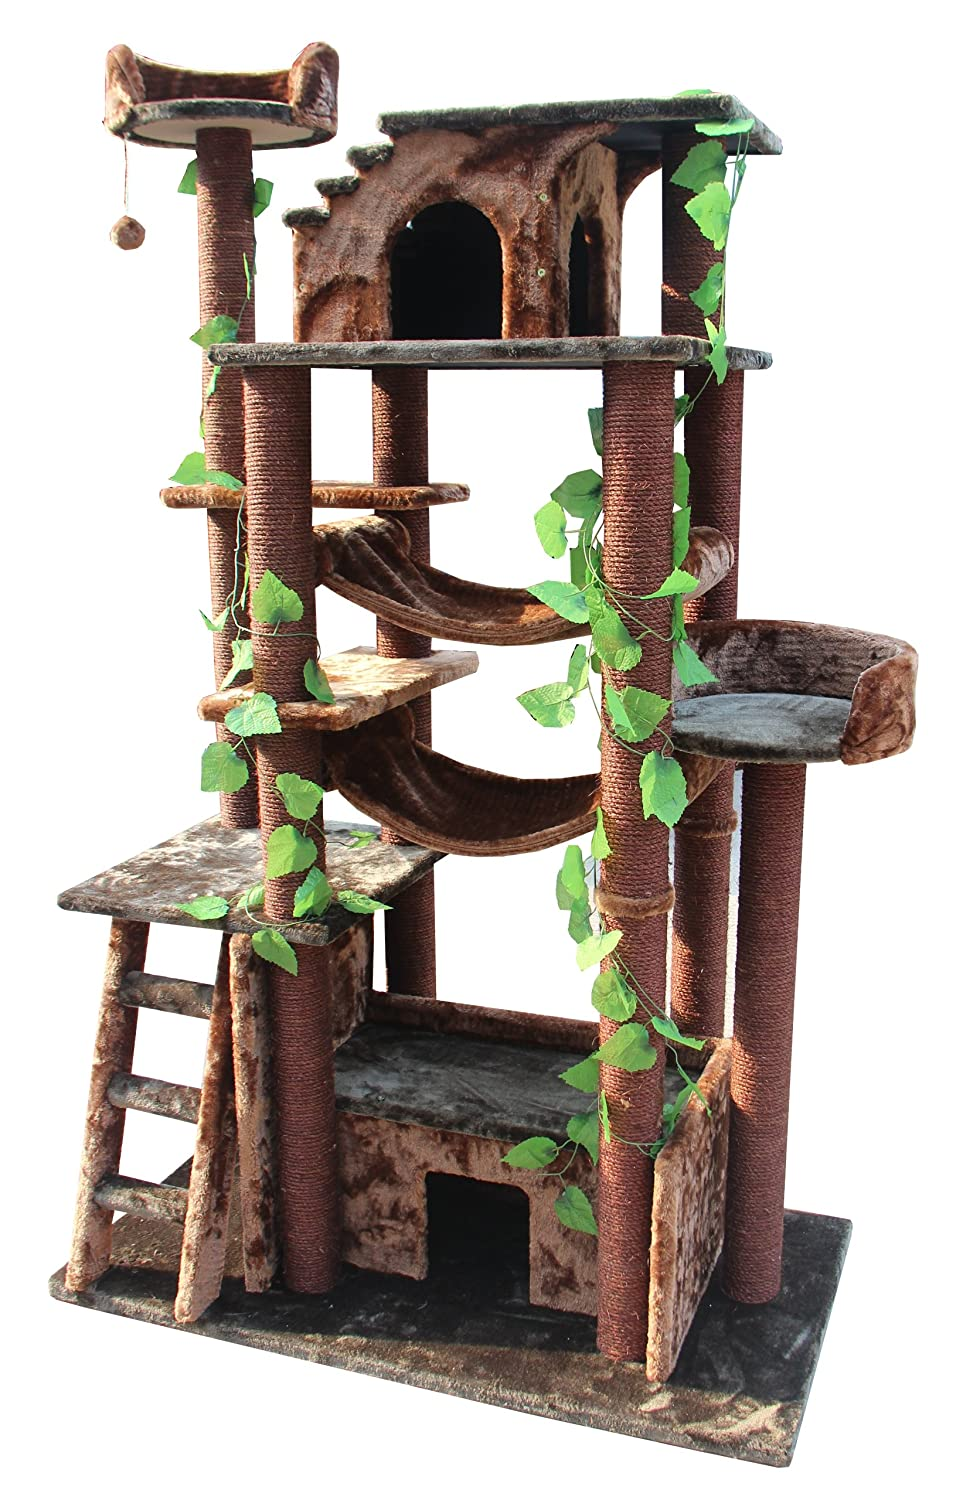 kitty mansions amazon cat tree green brown